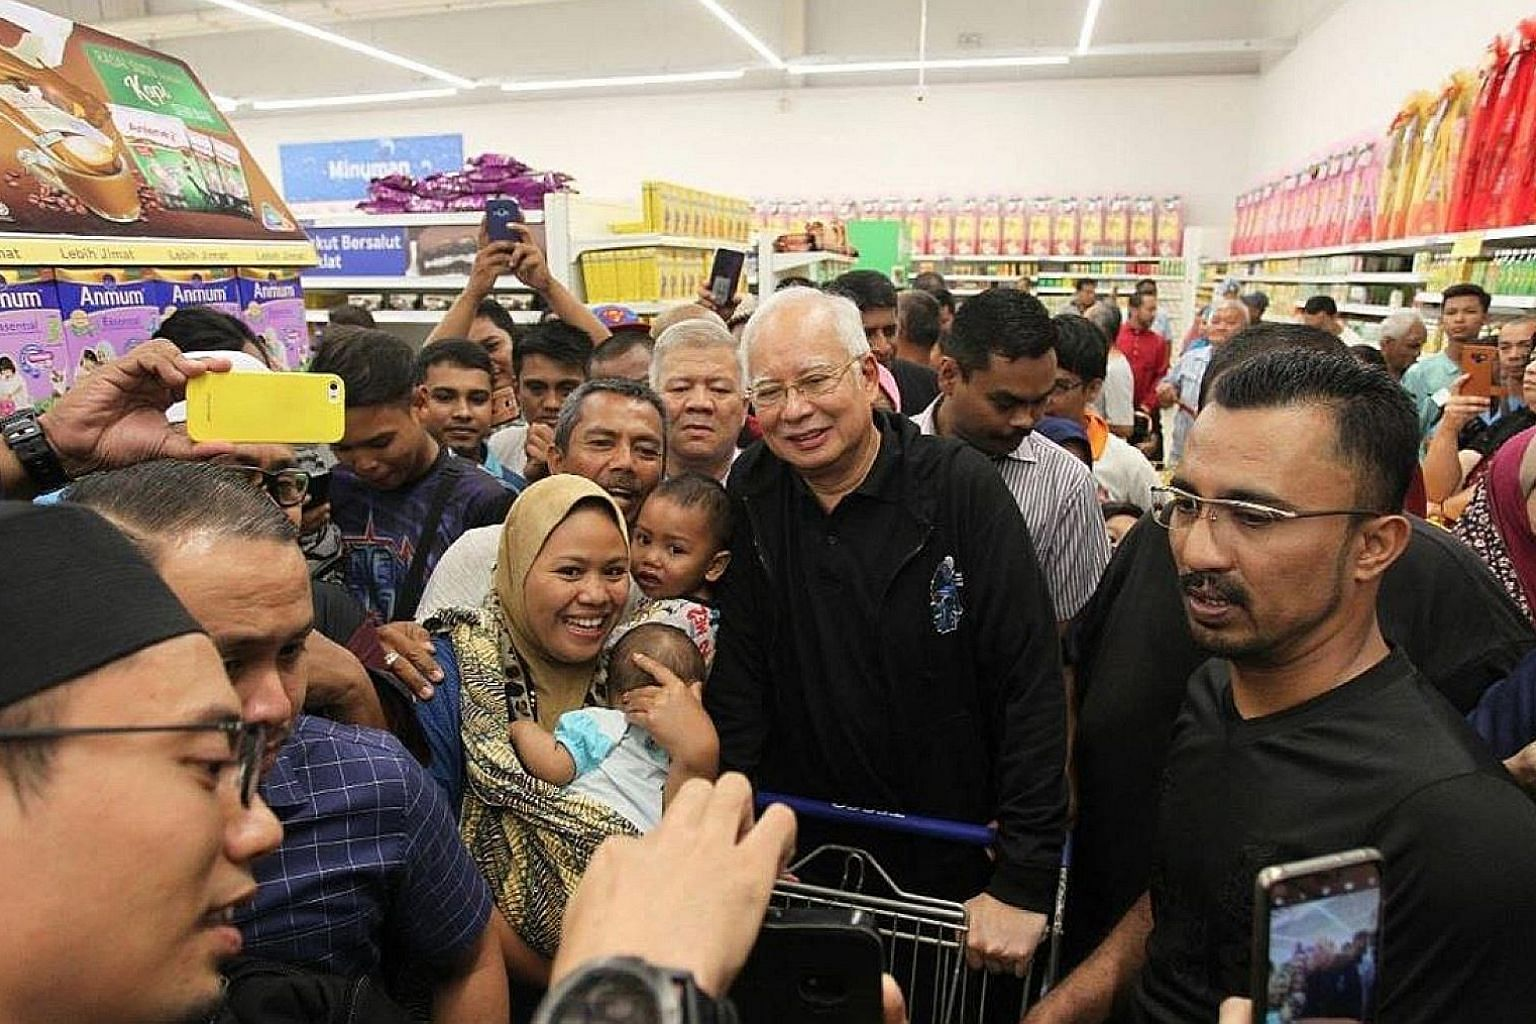 Former Malaysian prime minister Najib Razak having a picture taken with supporters while shopping at Tesco hypermarket in Semenyih on Wednesday. Najib seems to be enjoying new-found popularity despite facing dozens of charges linked to graft and fina